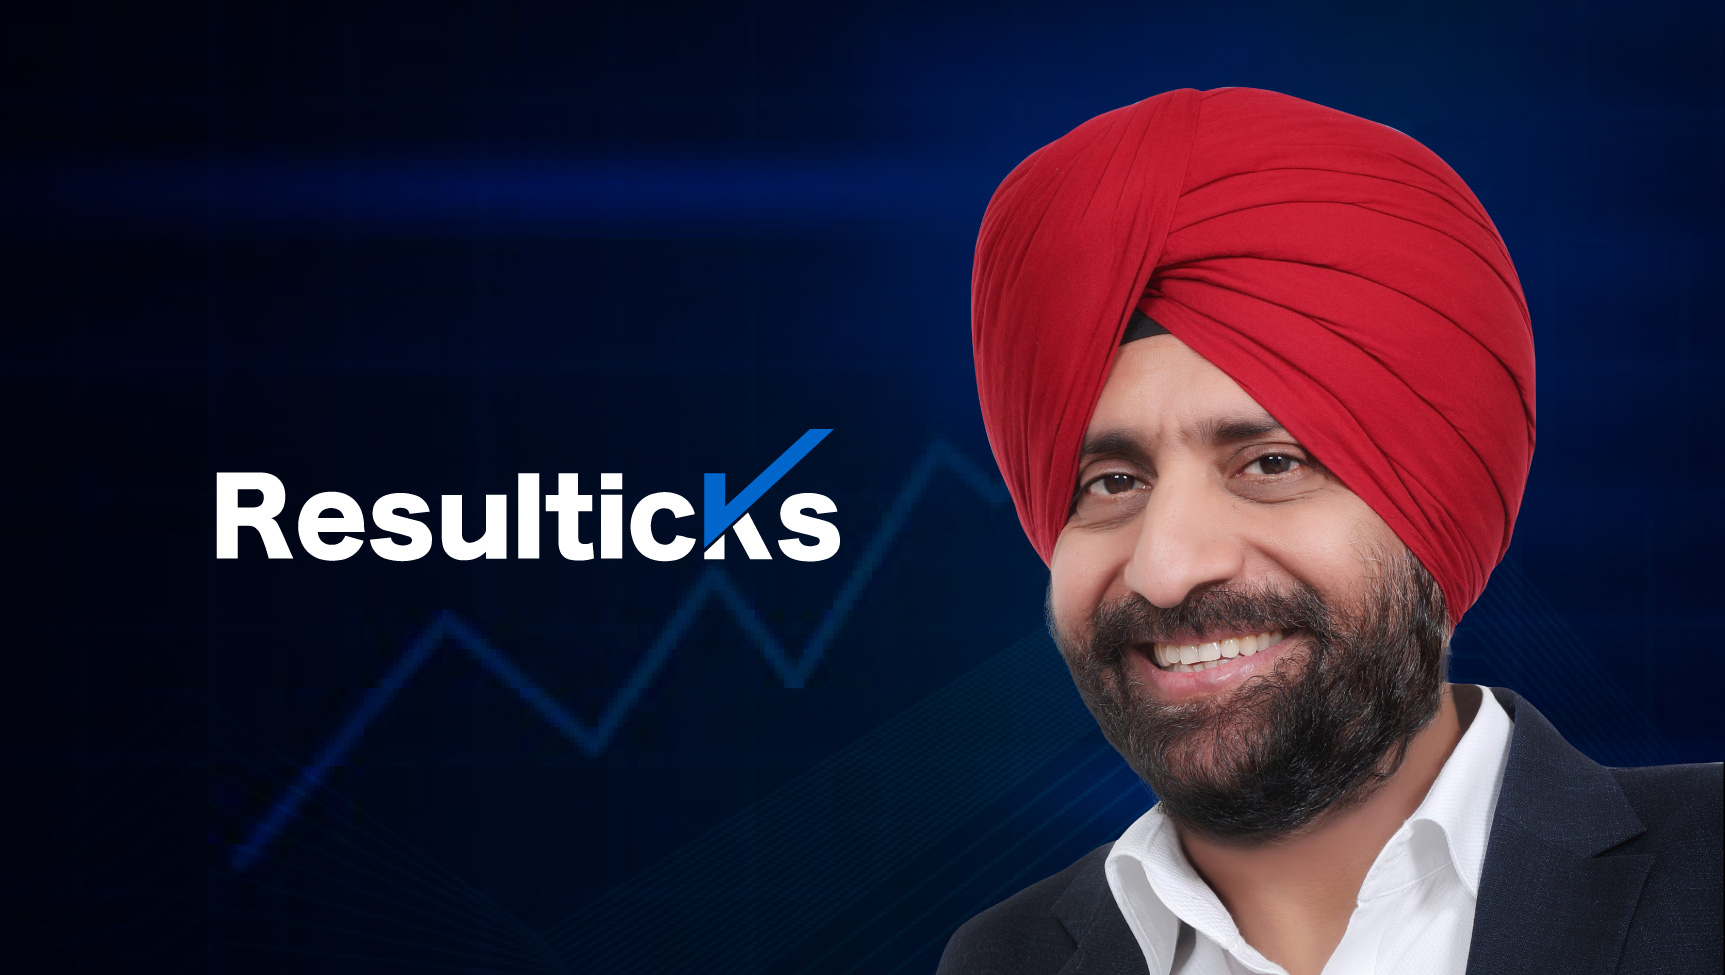 SalesTech Star Interview with Kulmeet Bawa, COO at Resulticks